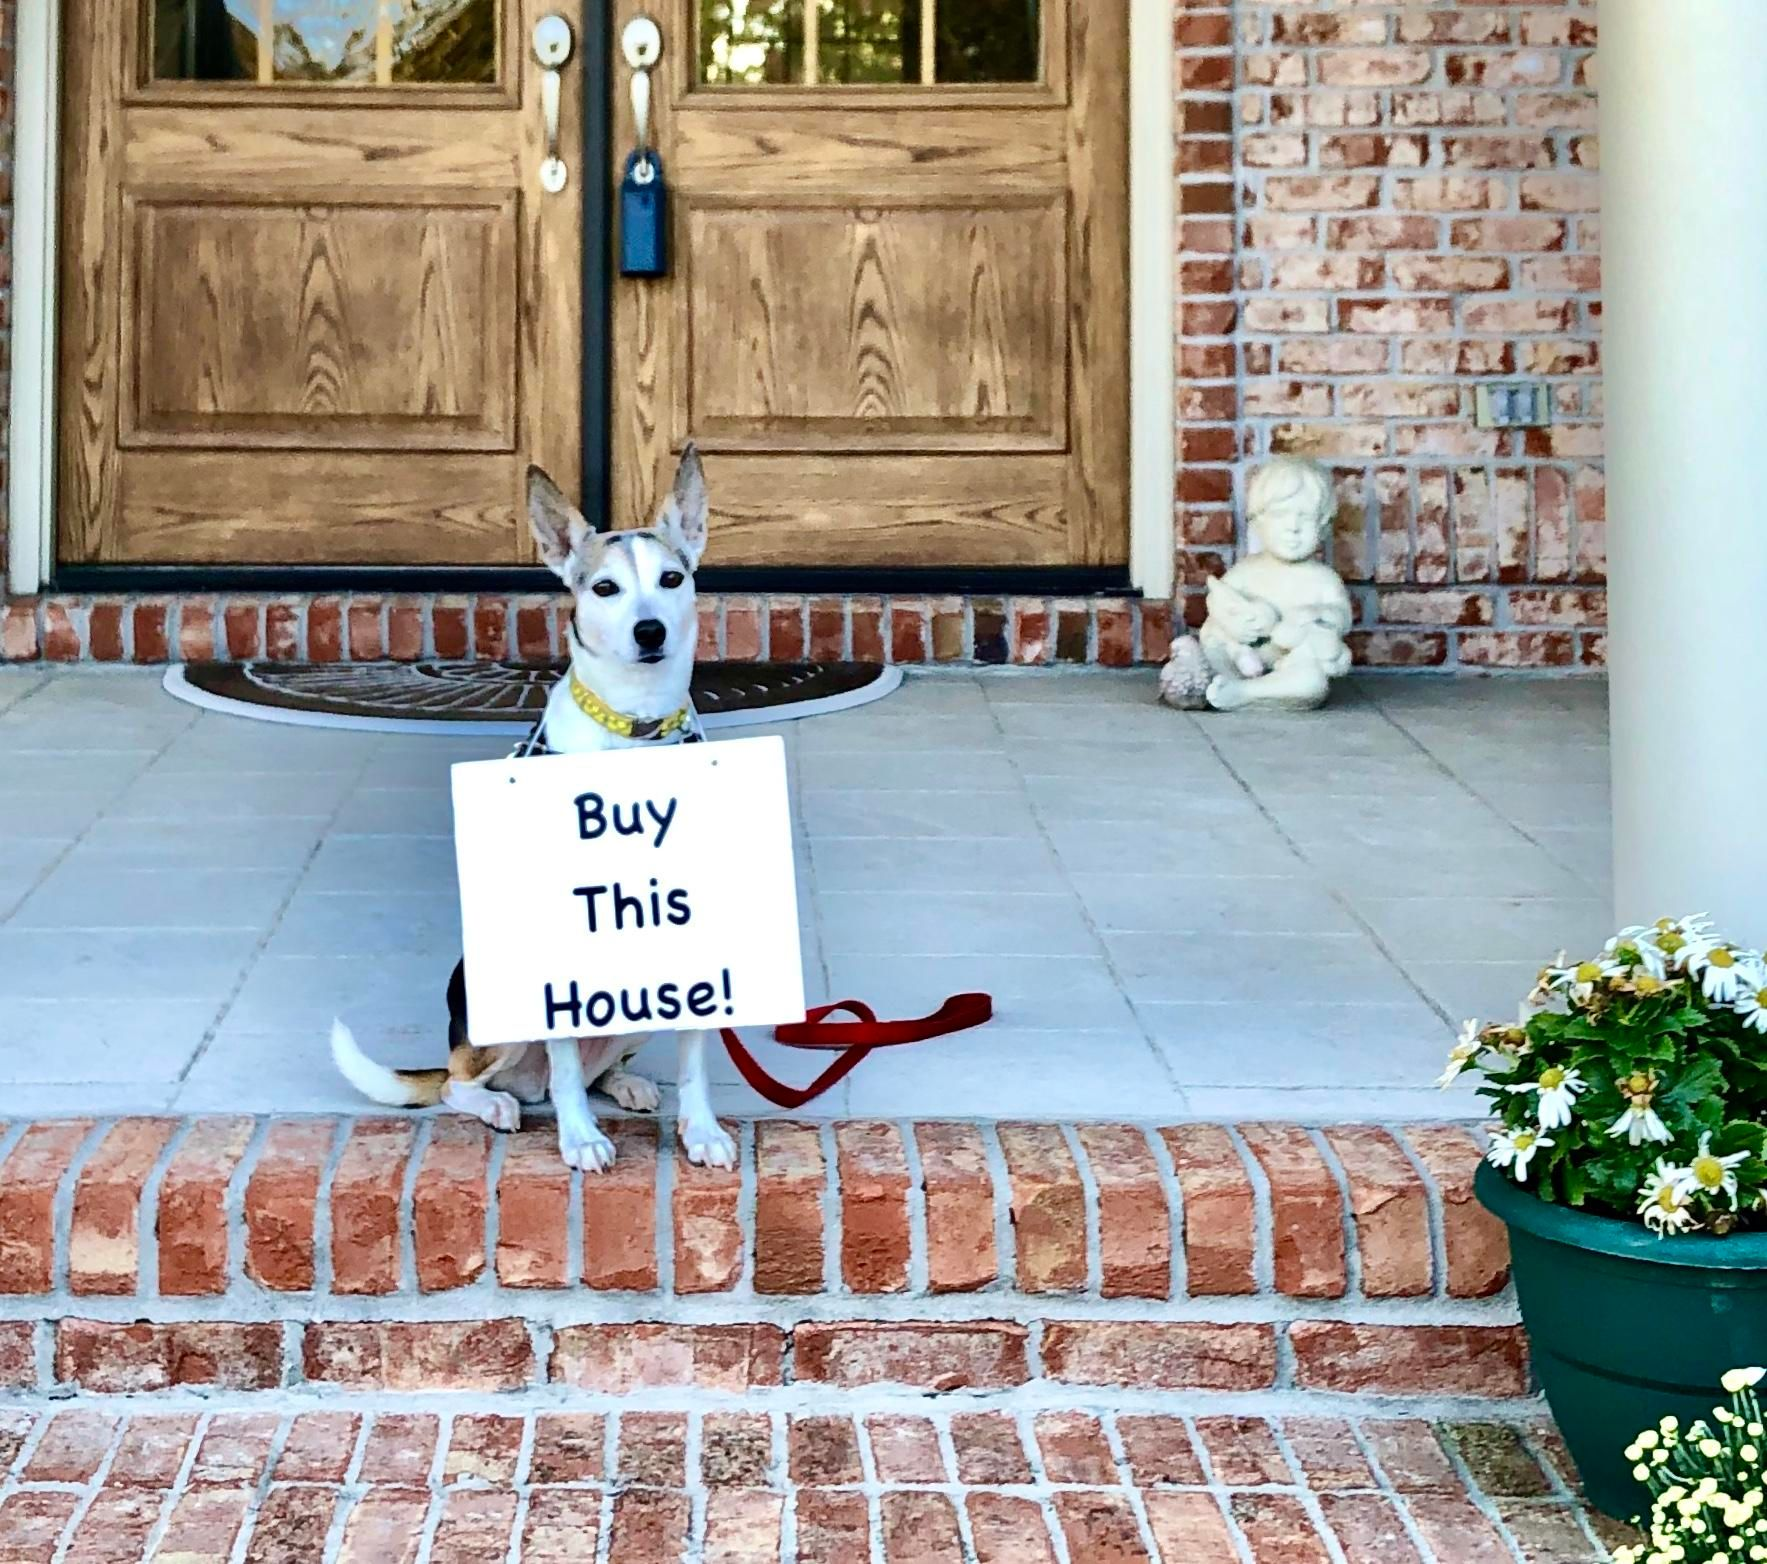 Buy this house